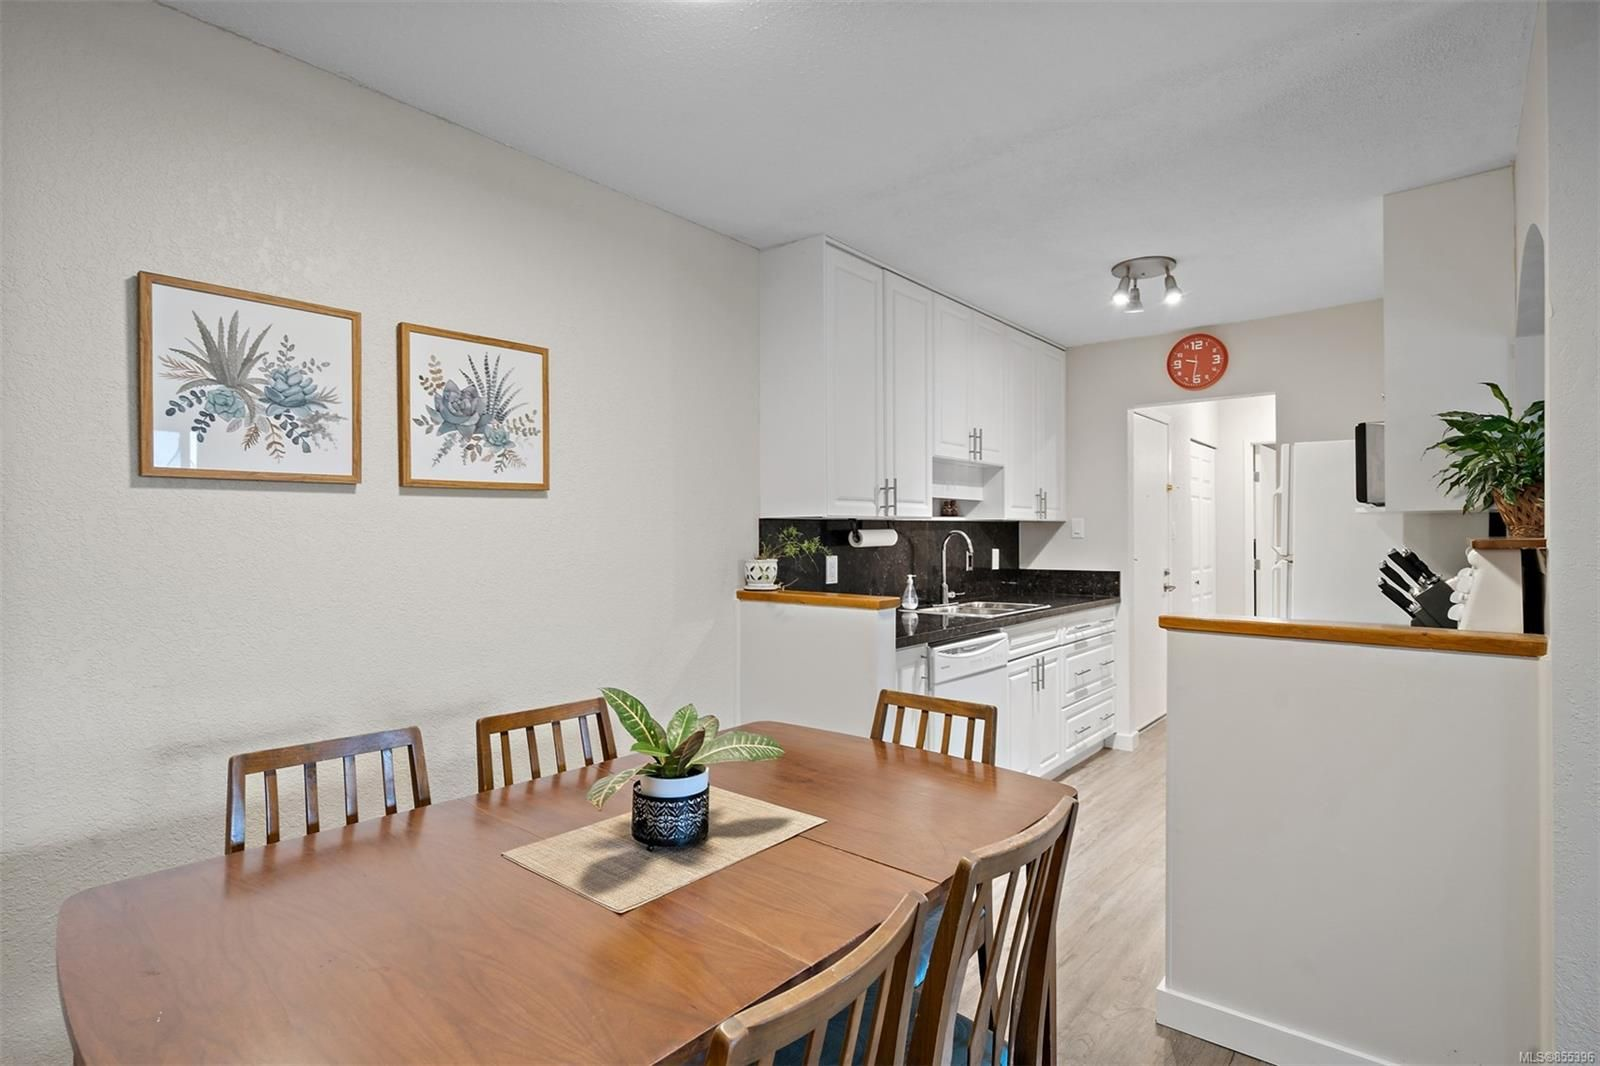 Photo 34: Photos: 308 1060 Linden Ave in : Vi Rockland Condo for sale (Victoria)  : MLS®# 855396